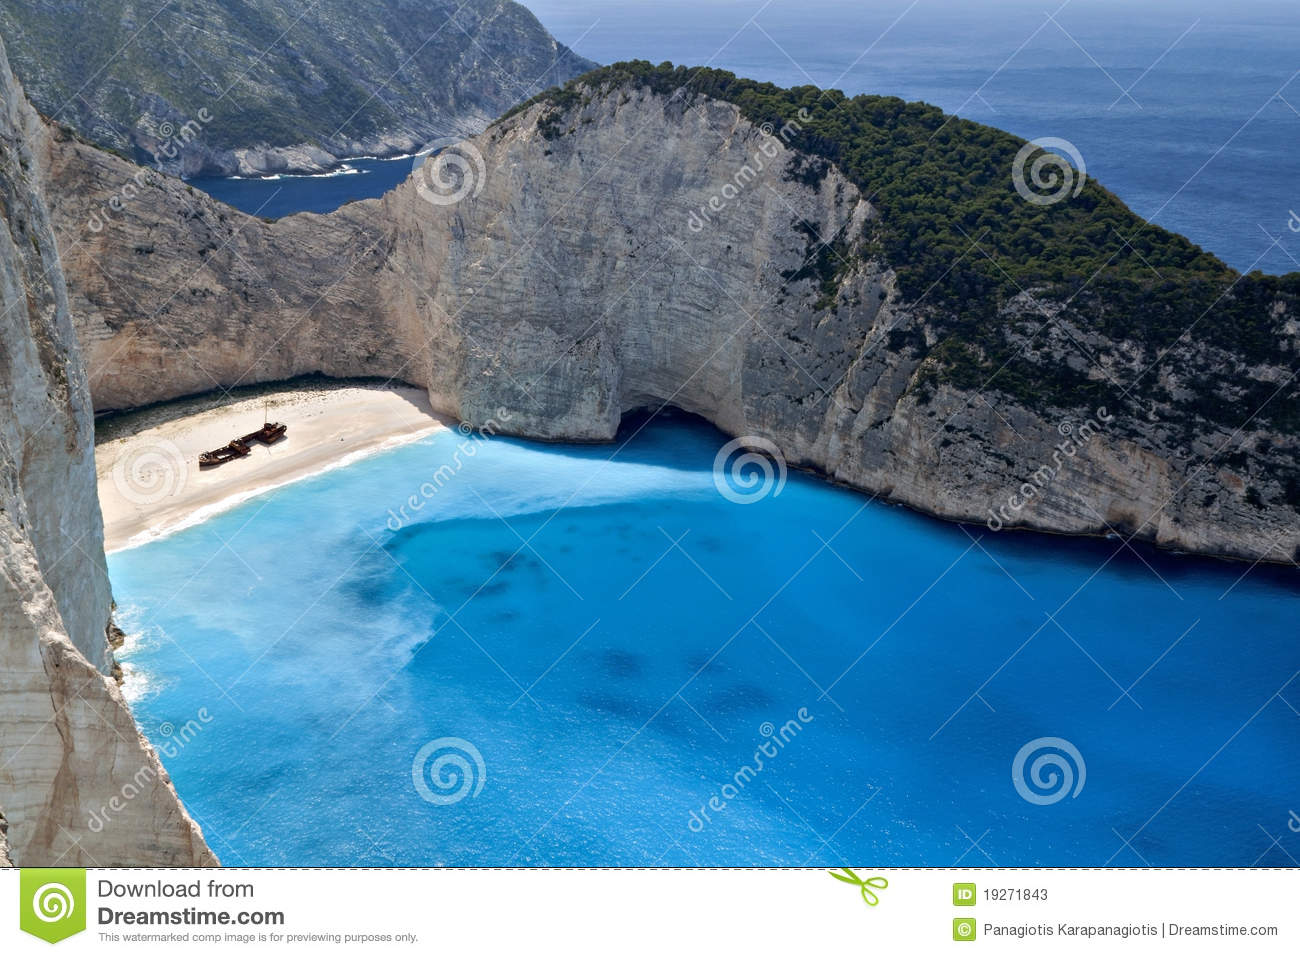 Navagio Beach clipart #18, Download drawings